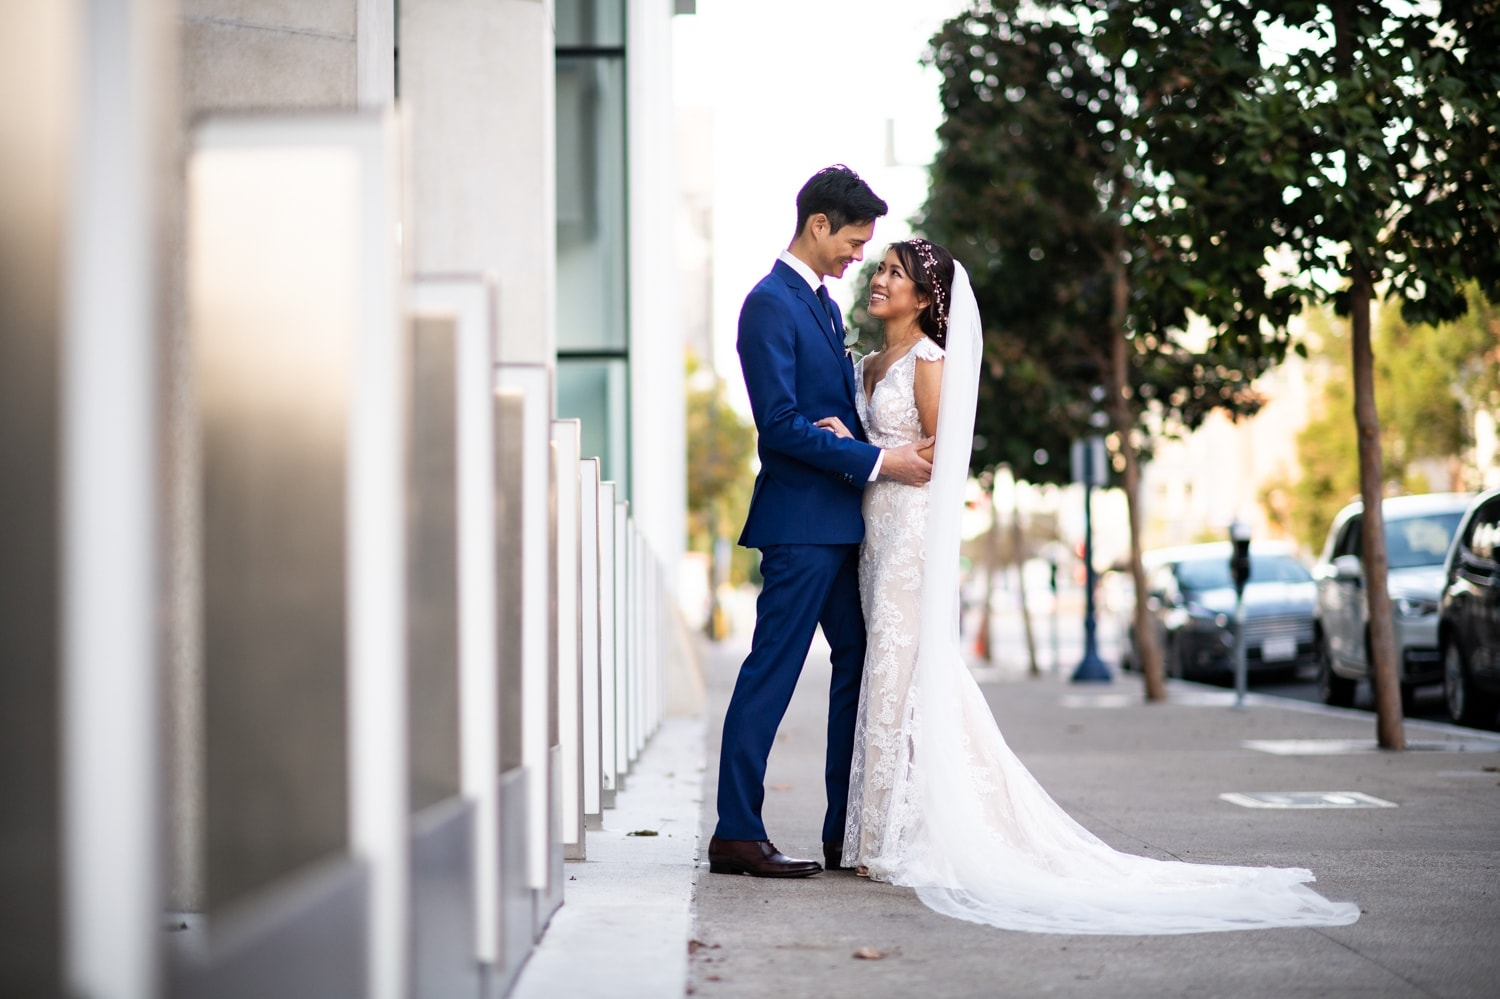 Bride and groom posing in downtown San Diego before their wedding.